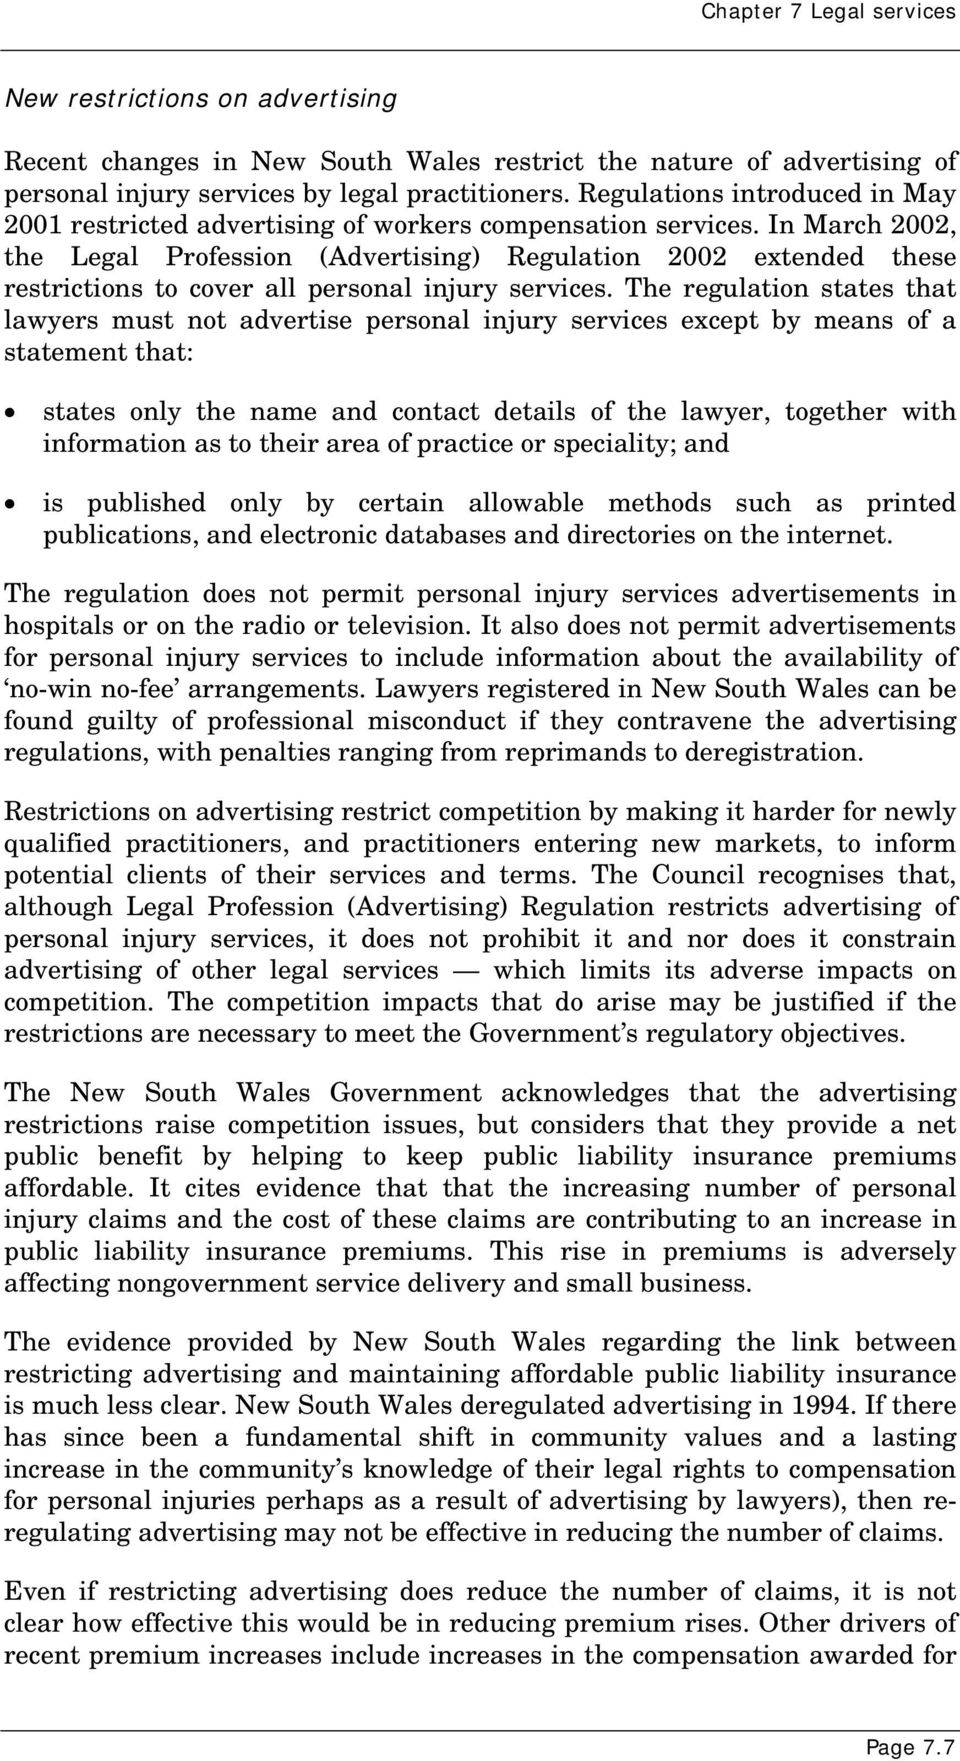 In March 2002, the Legal Profession (Advertising) Regulation 2002 extended these restrictions to cover all personal injury services.